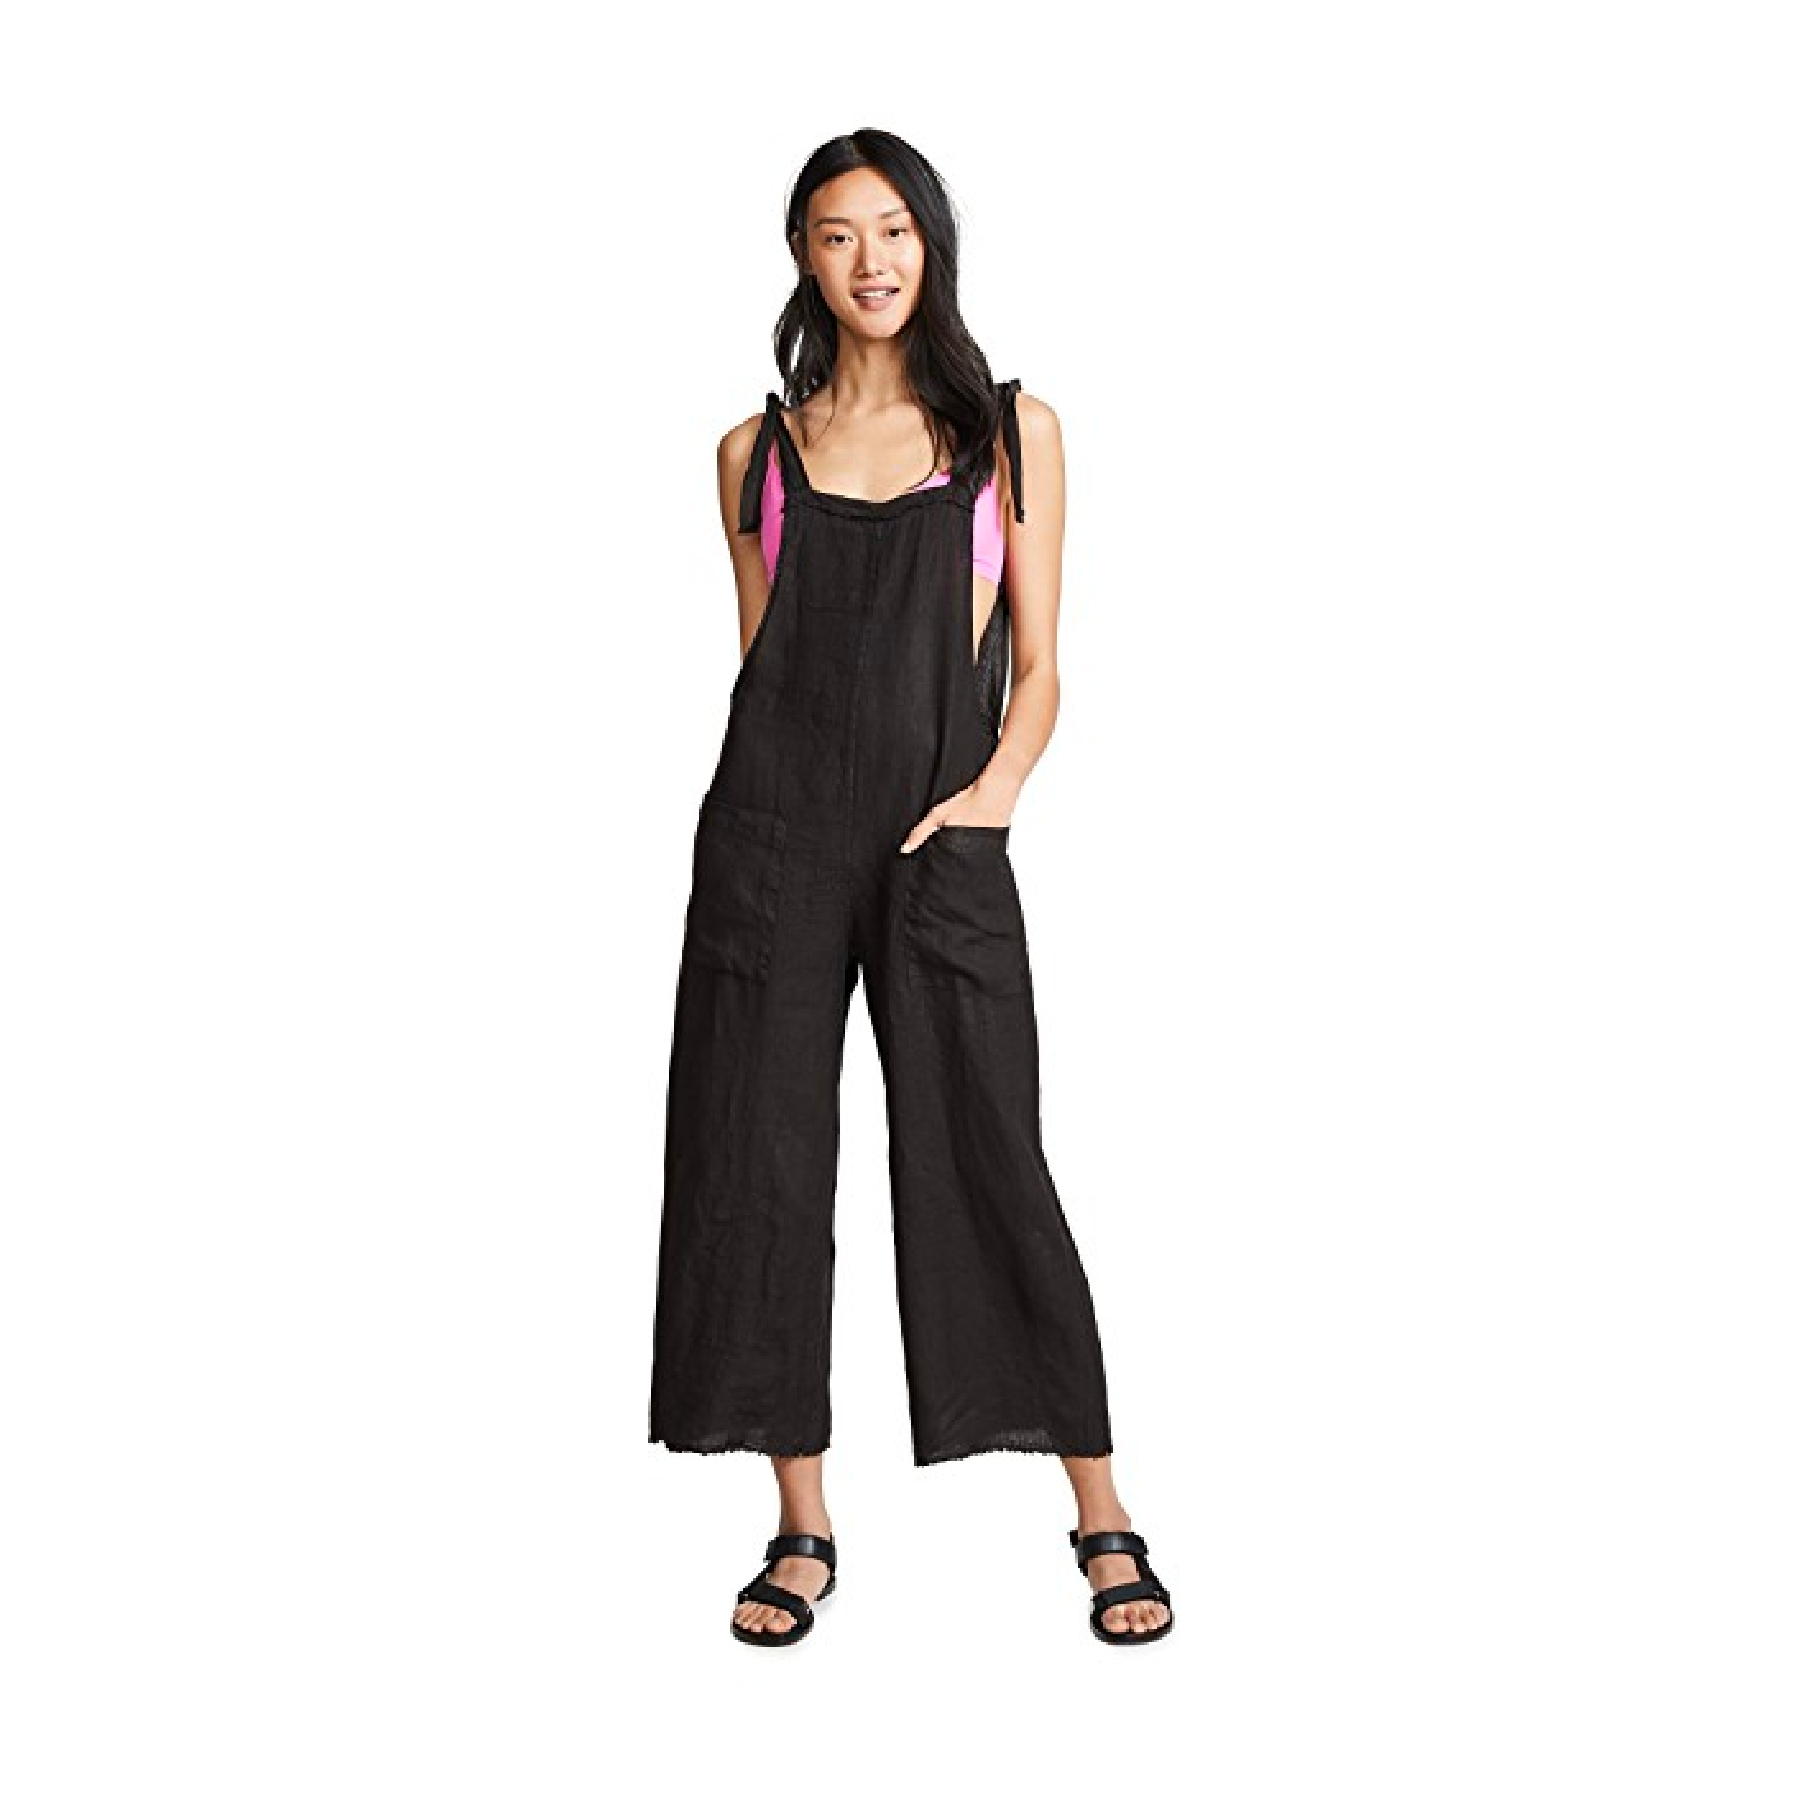 All Sorts Of - Overalls